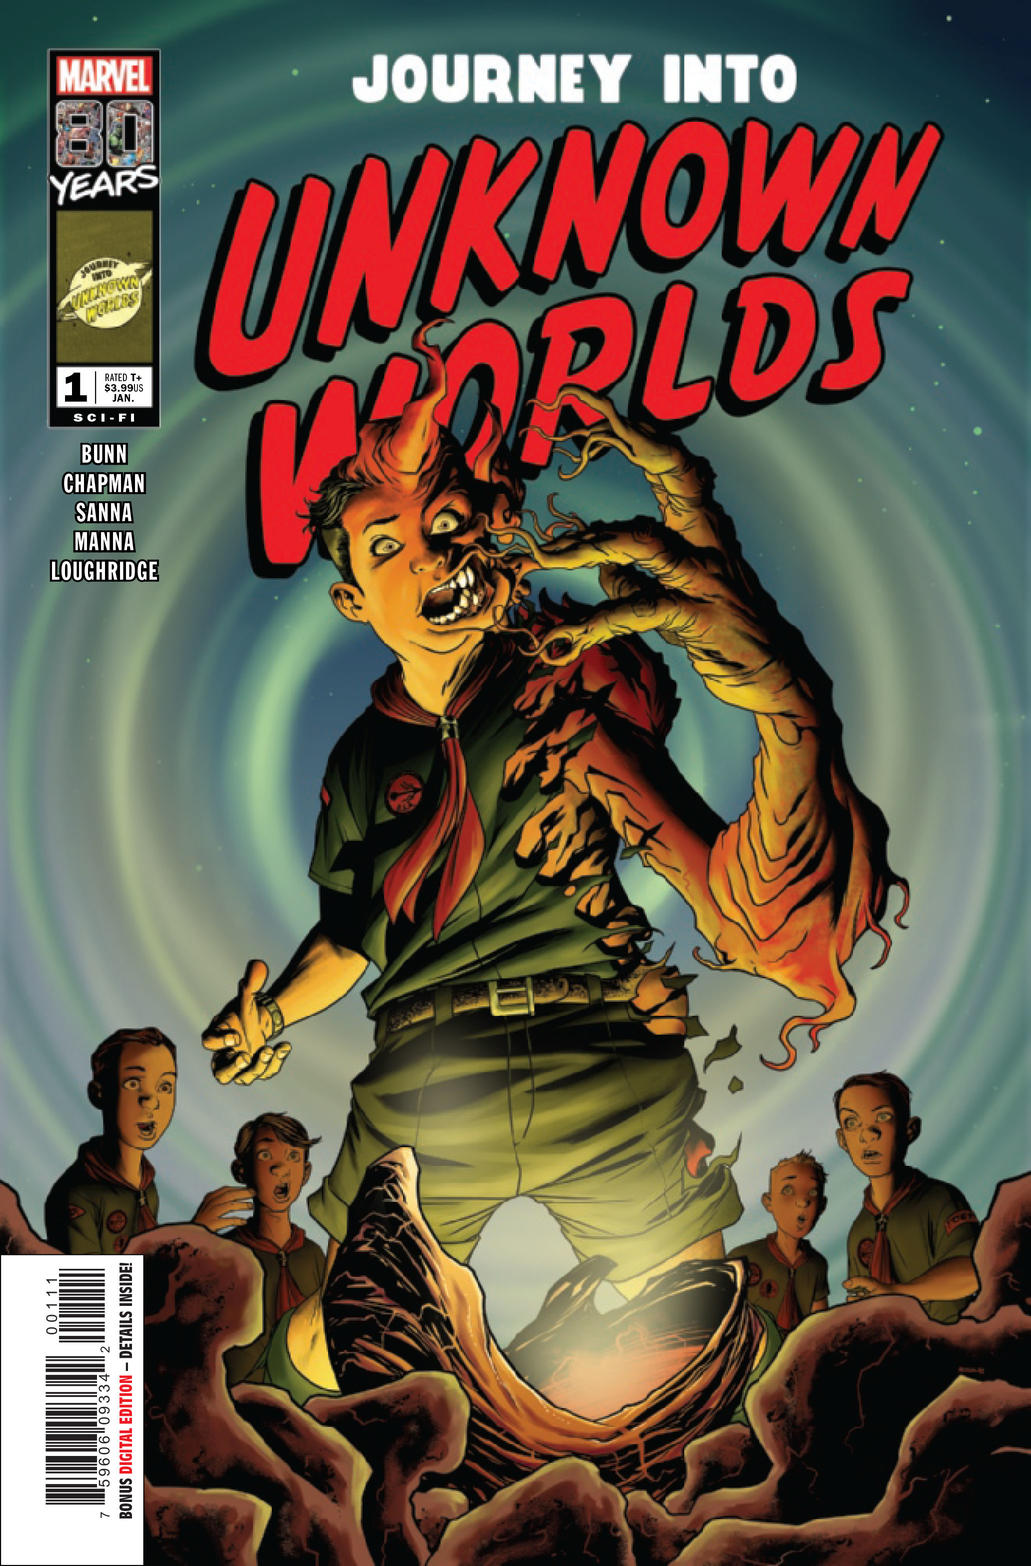 Cover of Journey Into Unknown Worlds